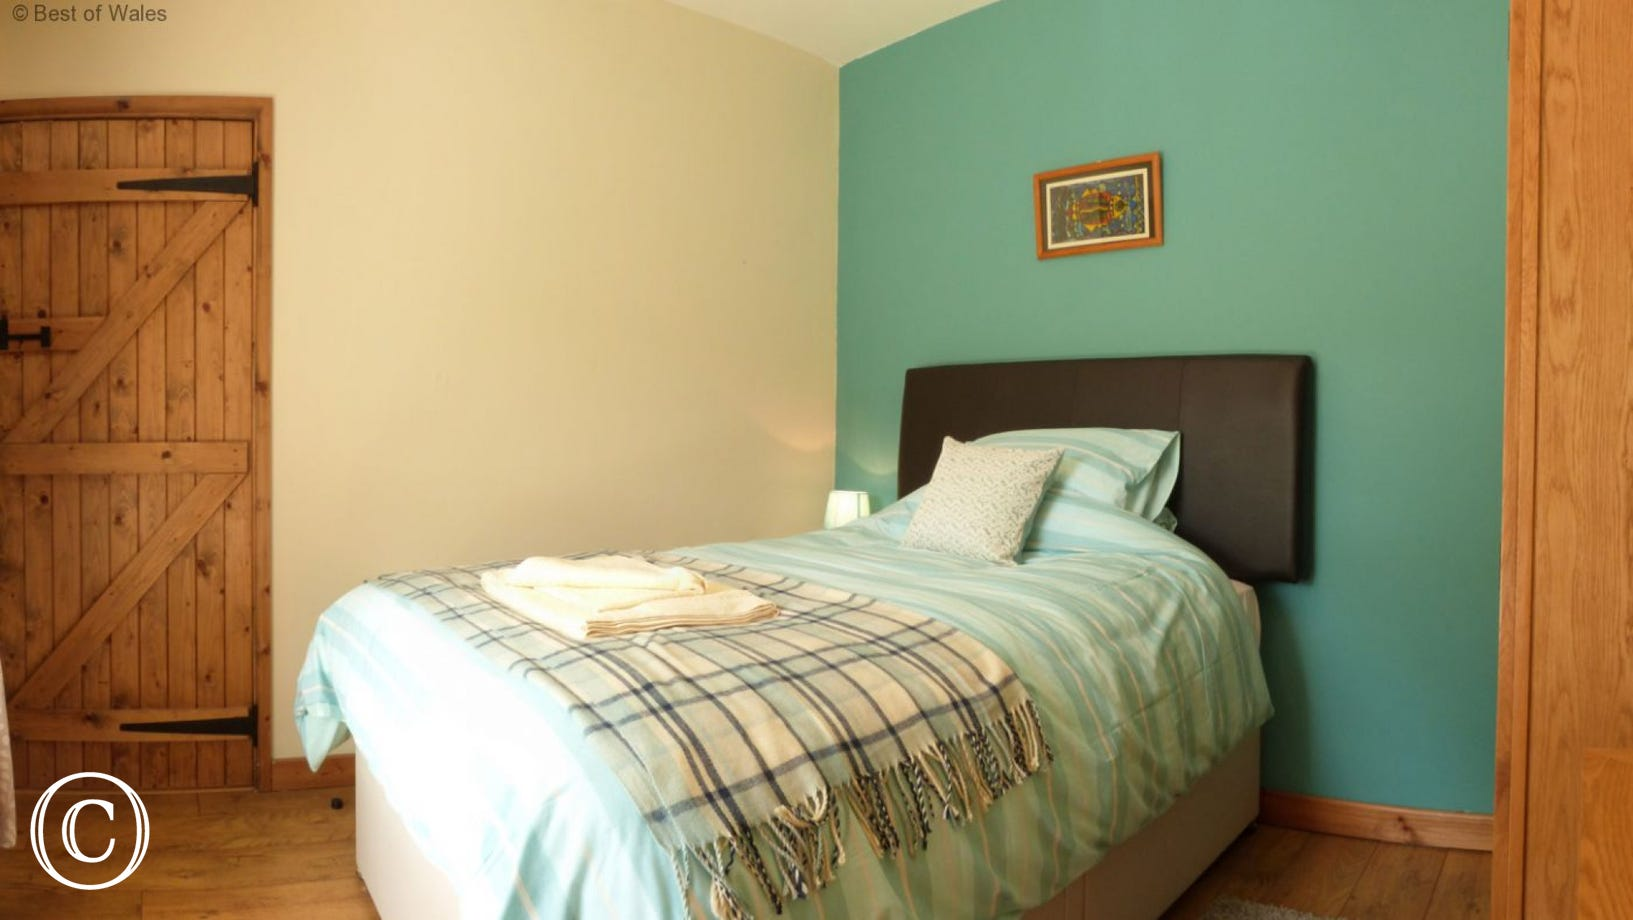 Bedroom 4 - Small double bed (4ft) for single occupancy.